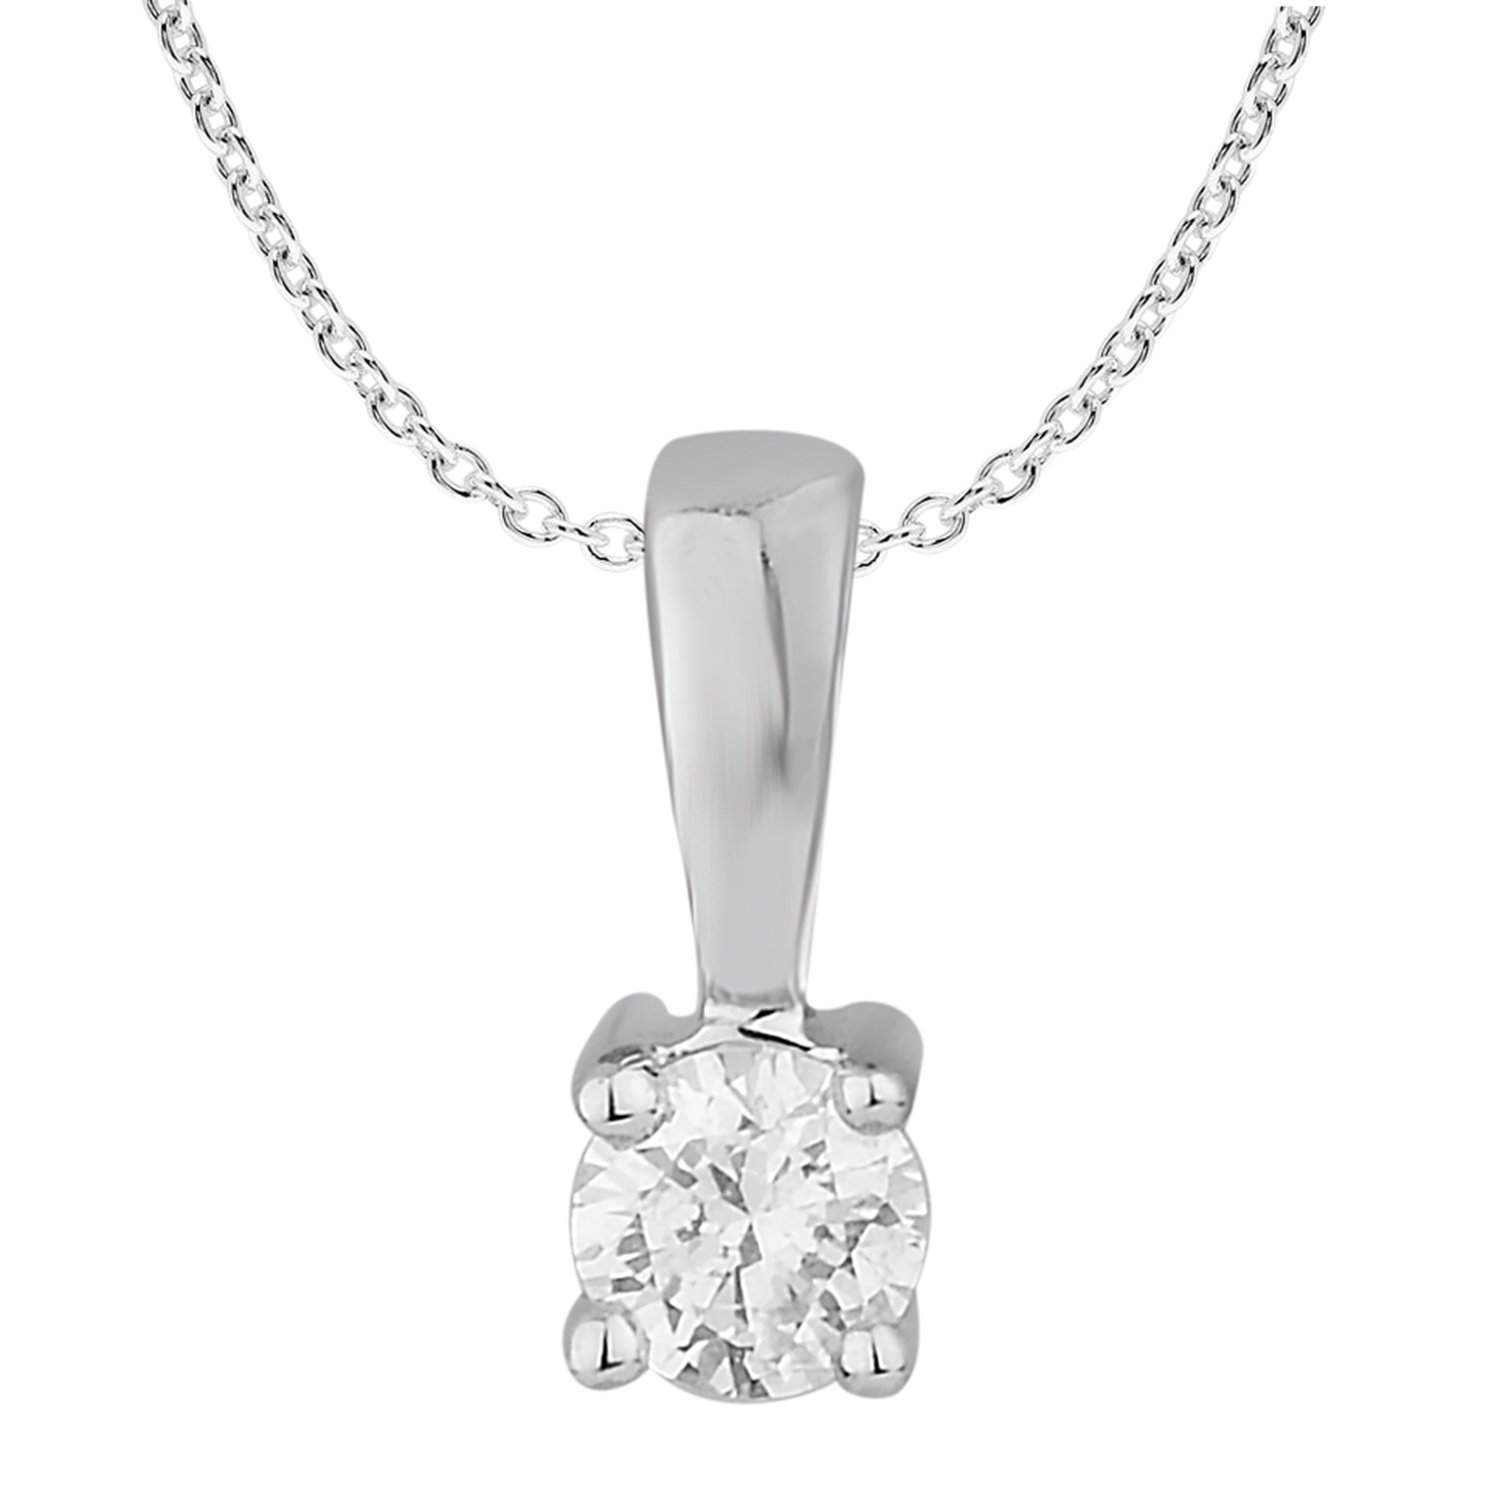 1/10 ct Round Diamond Pendant Necklace Solitaire 10k White Gold (0.10cttw, IJK ,I2-I3)